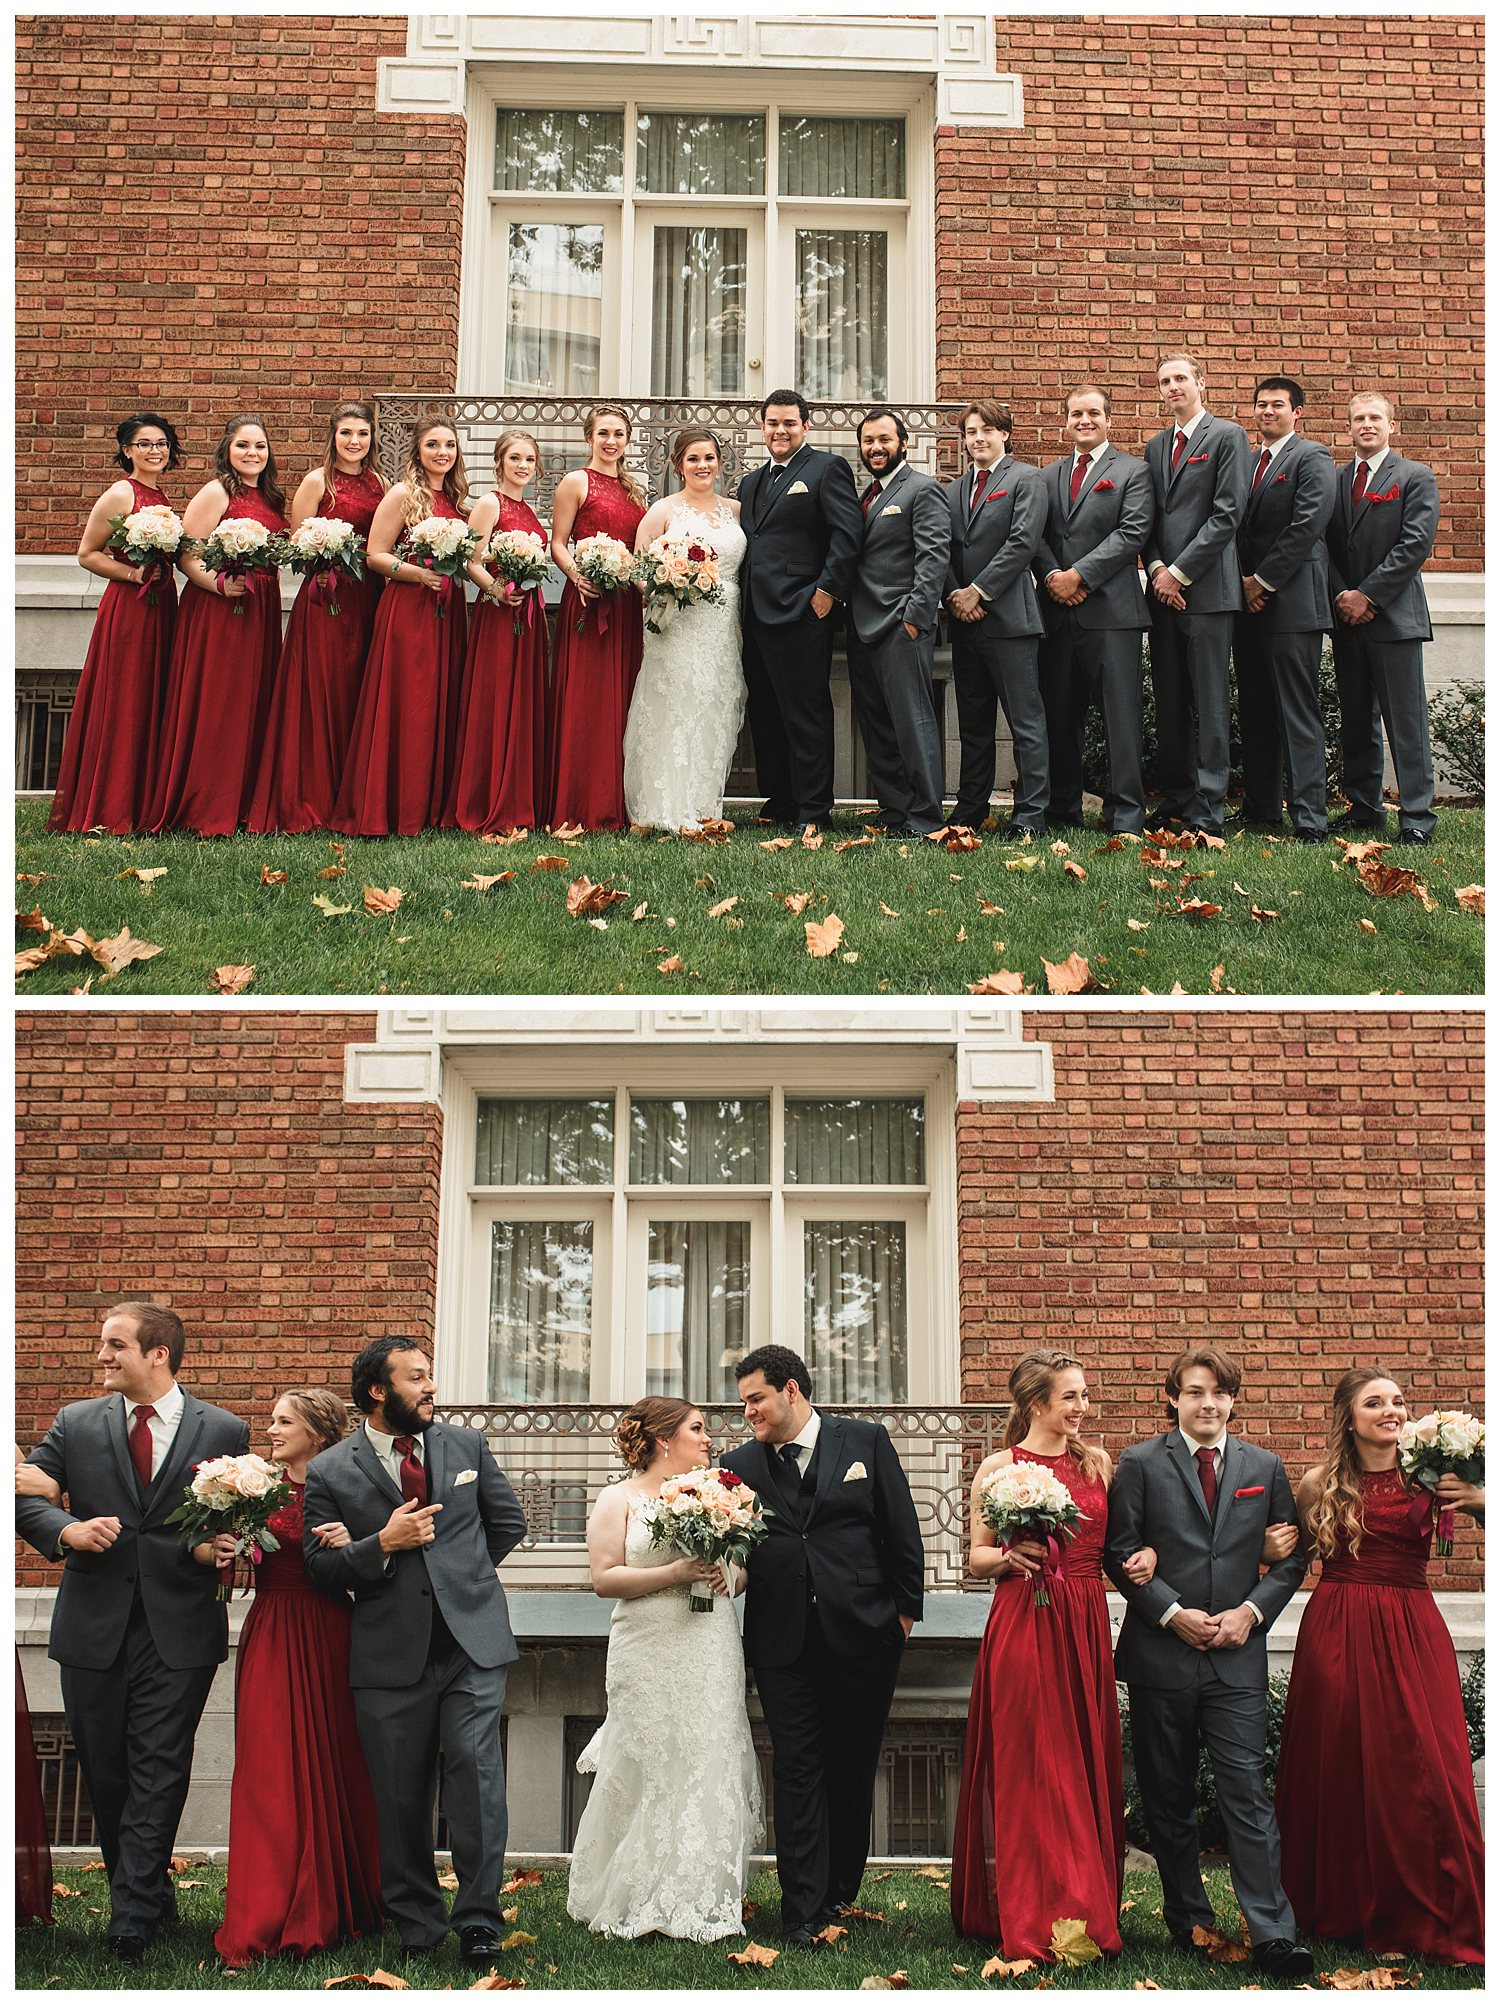 Kelsey_Diane_Photography_Loose_Mansion_Wedding_Photography_Kansas_City_Victor_Lyndsay_0127.jpg